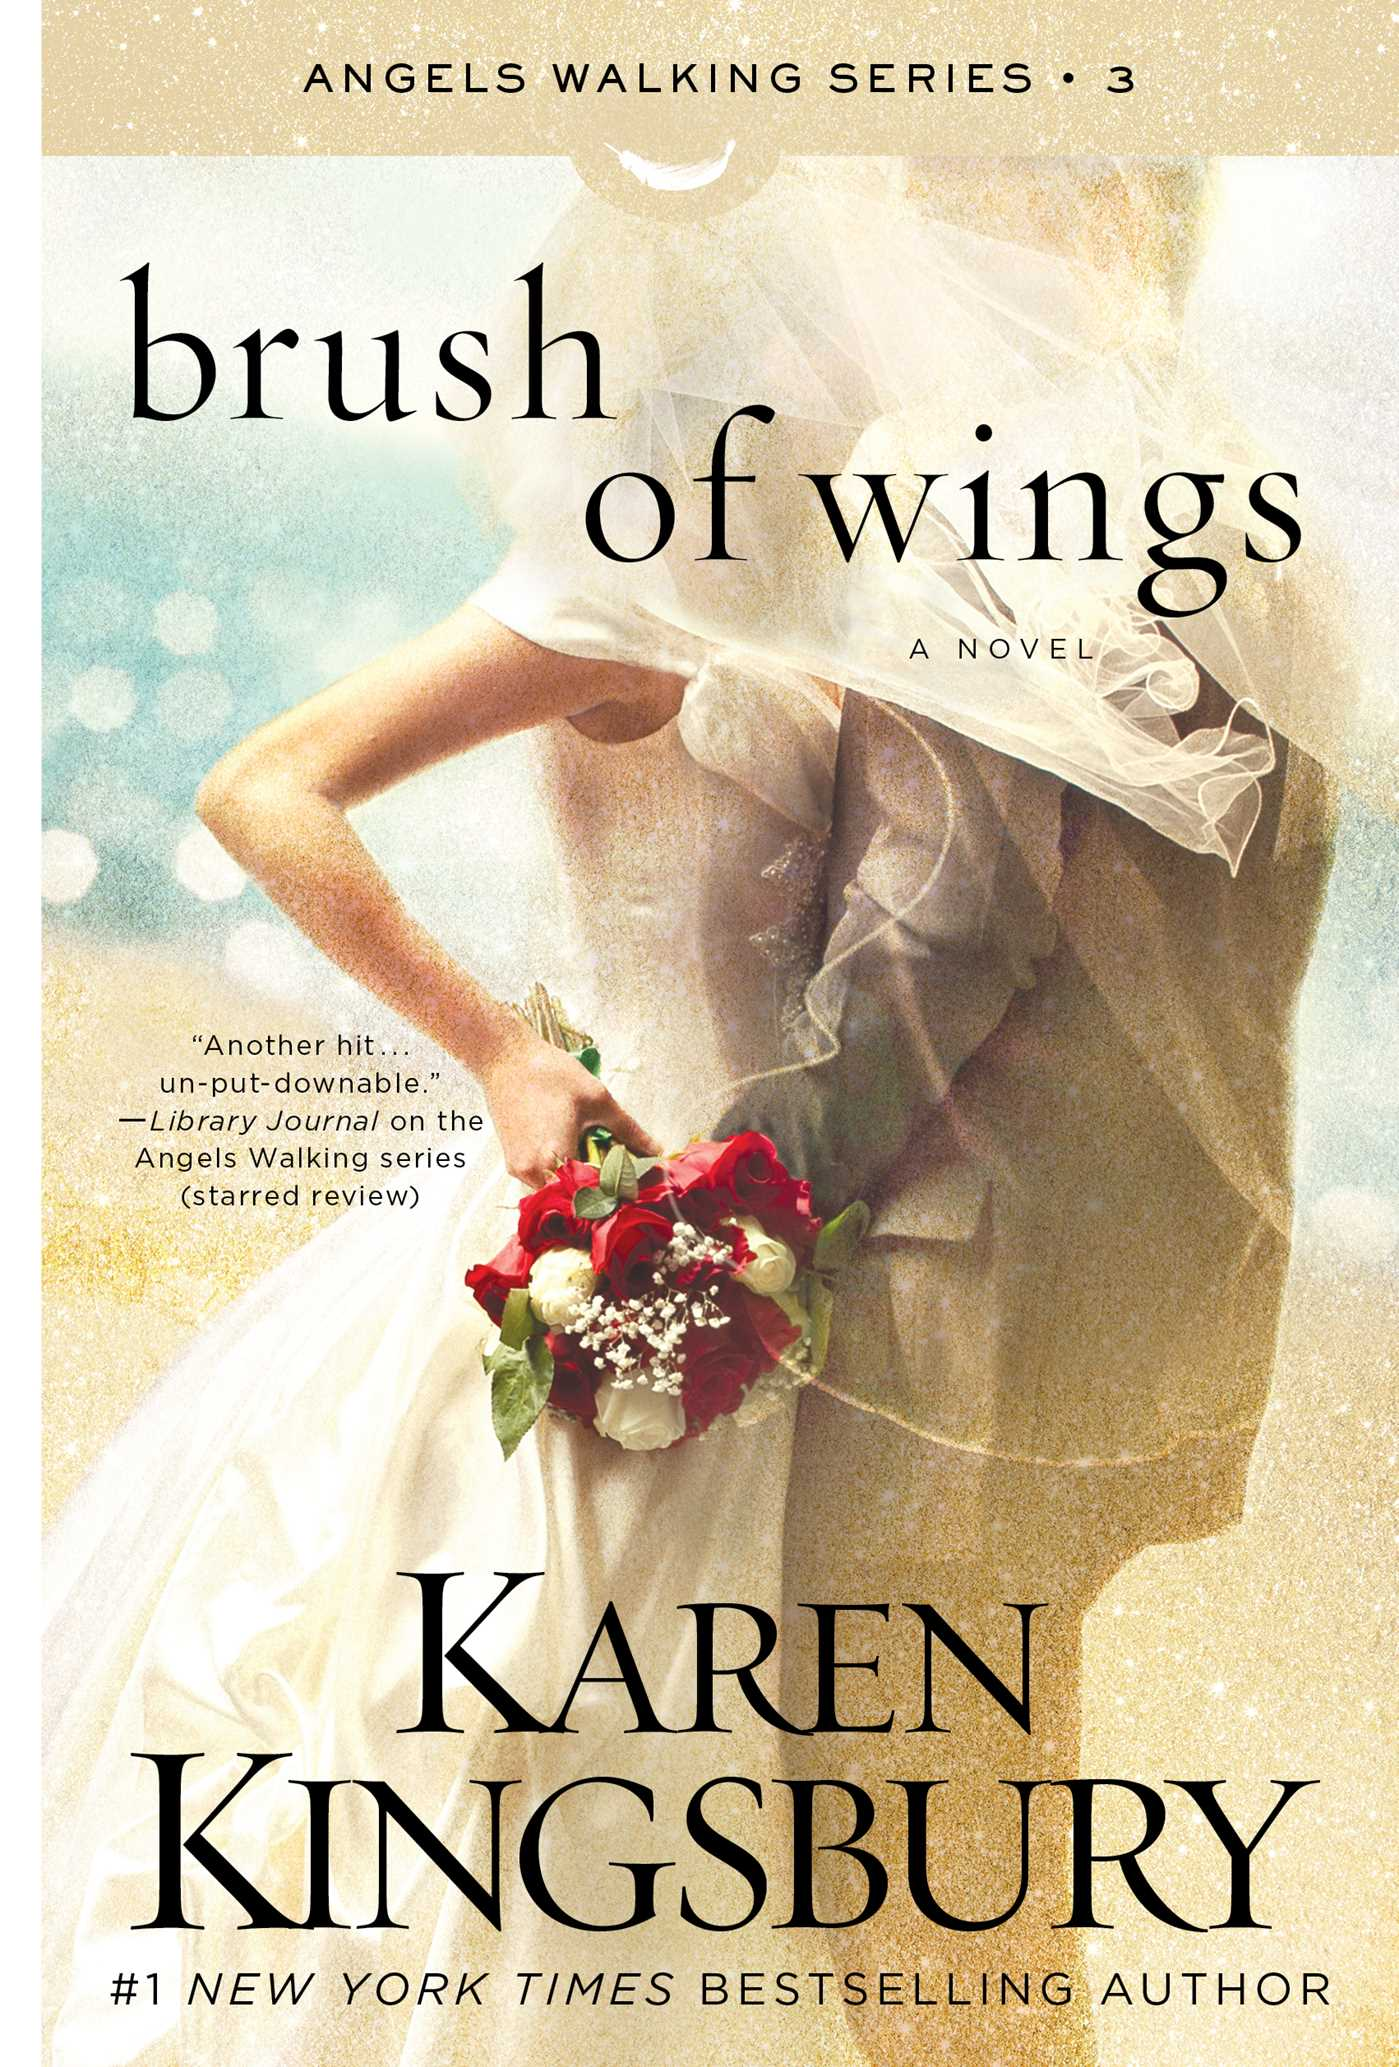 Brush of wings : a novel